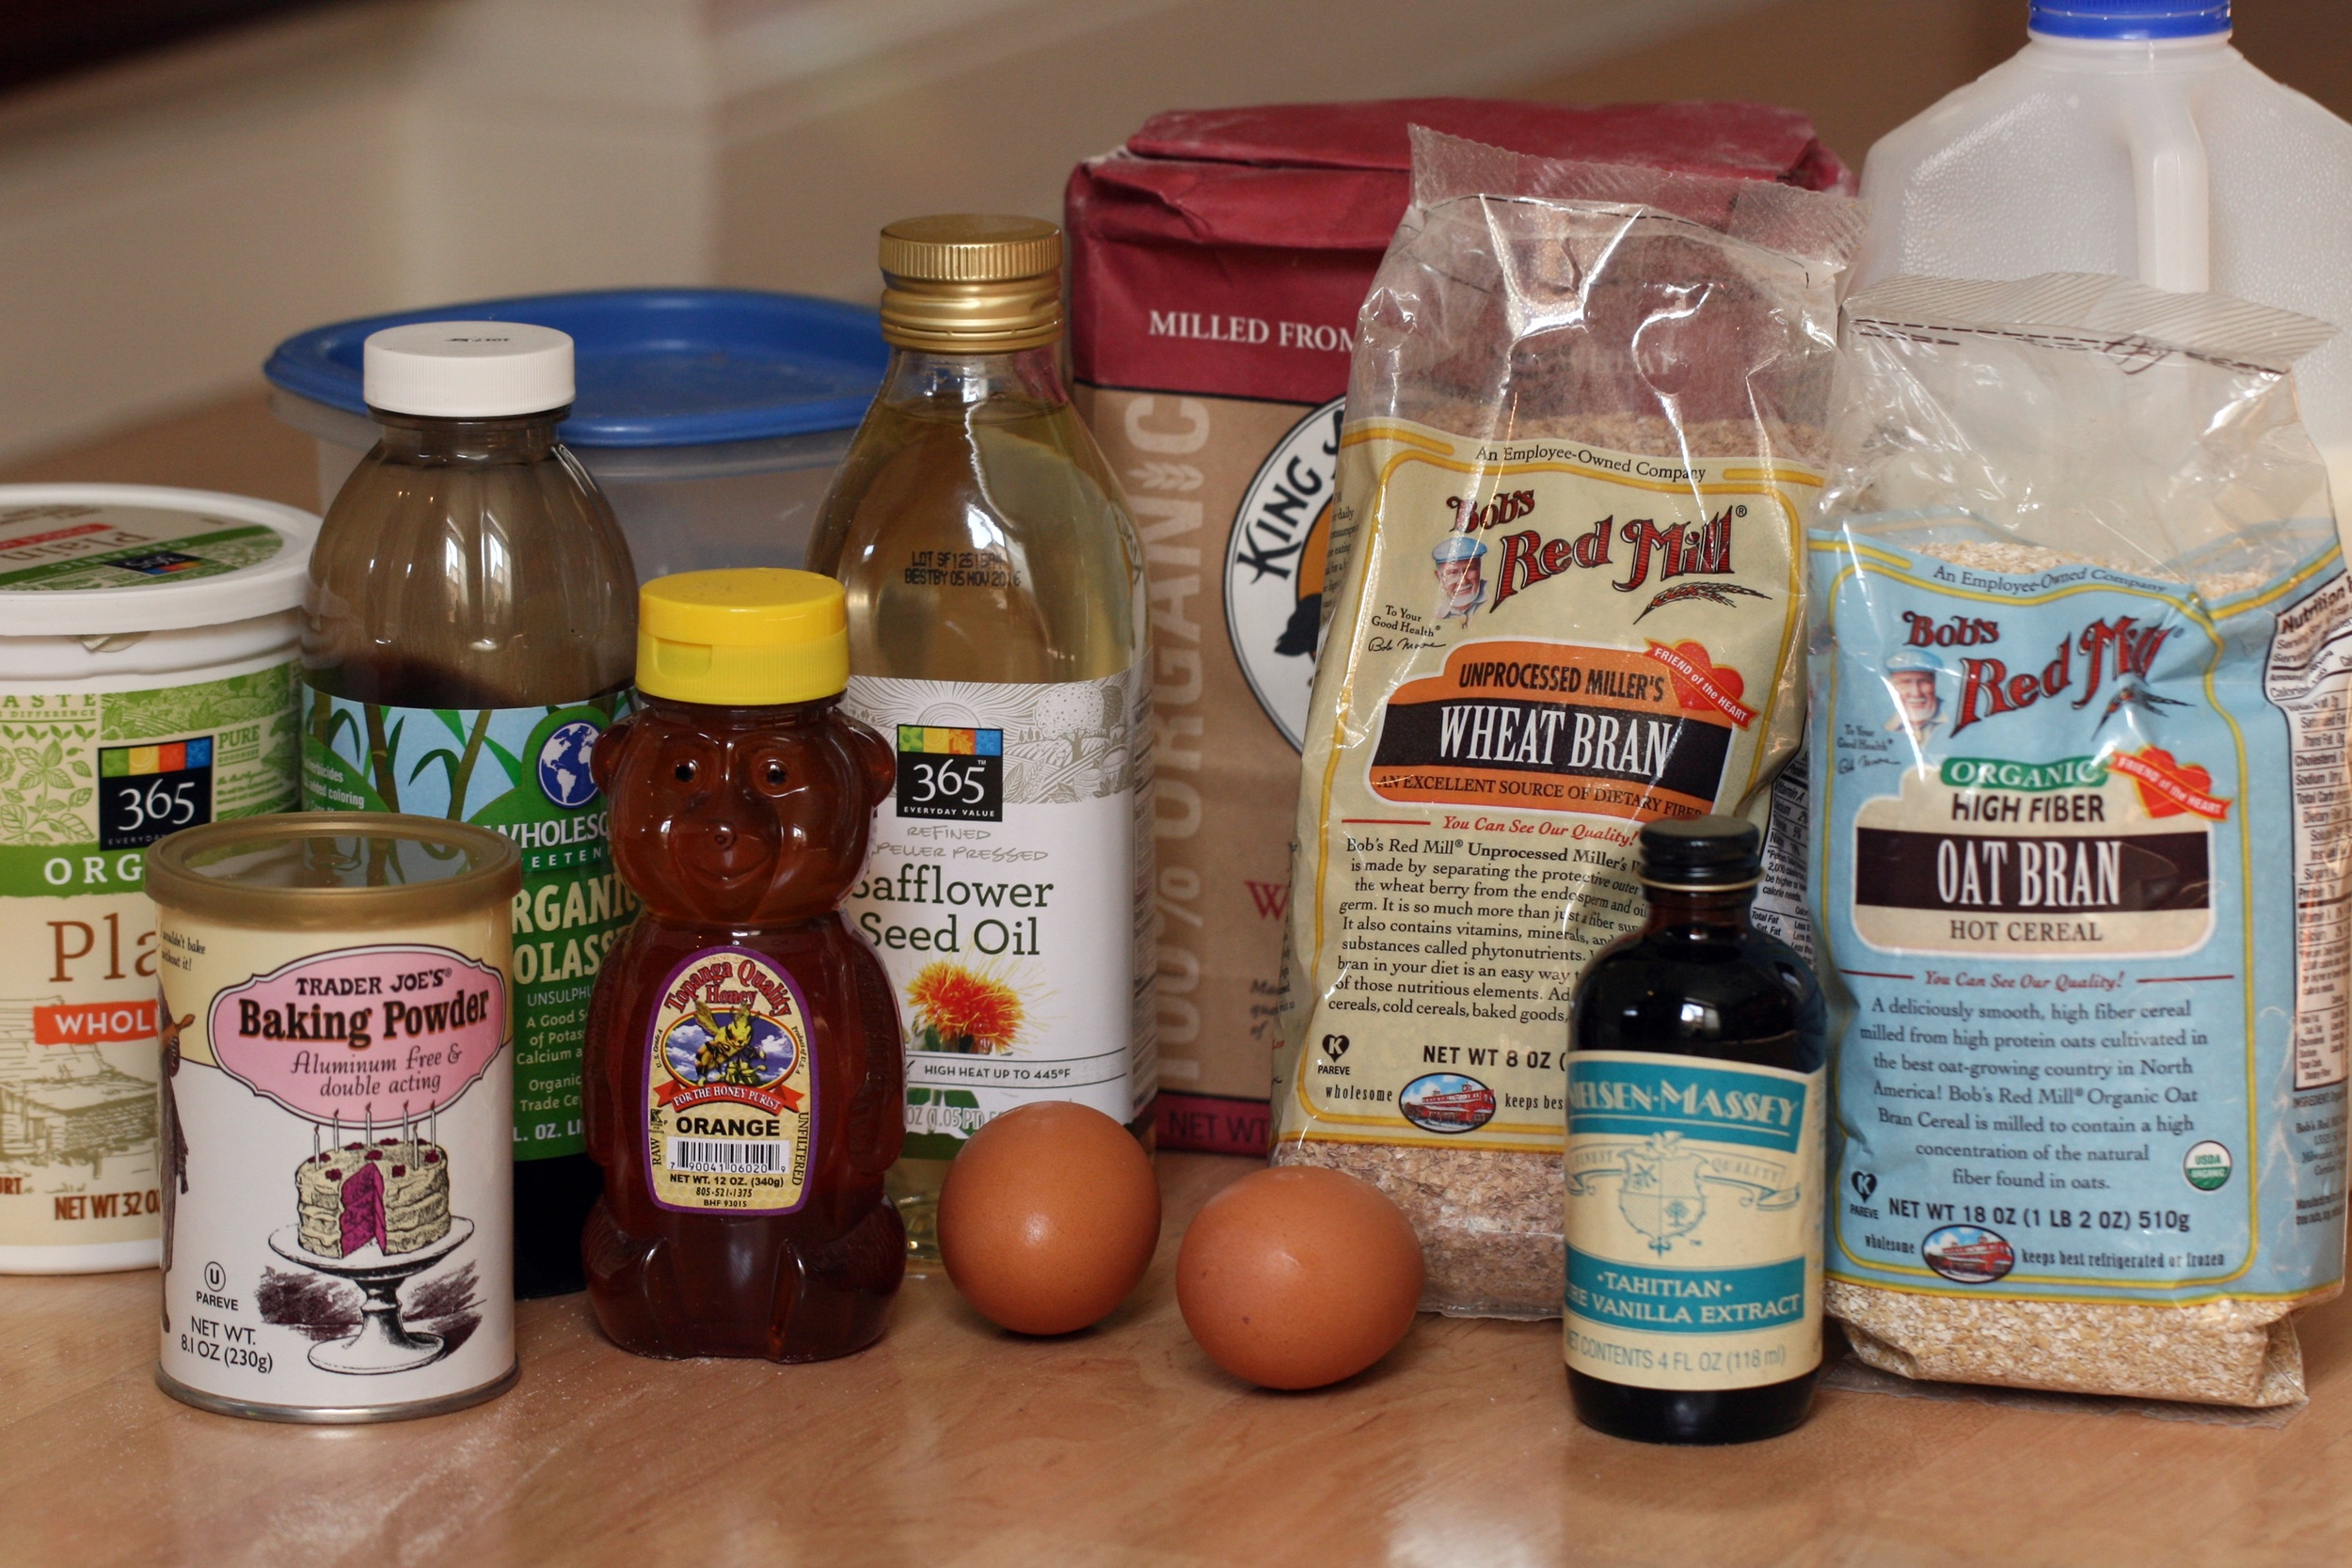 Ingredients for homemade sustainable bran muffins